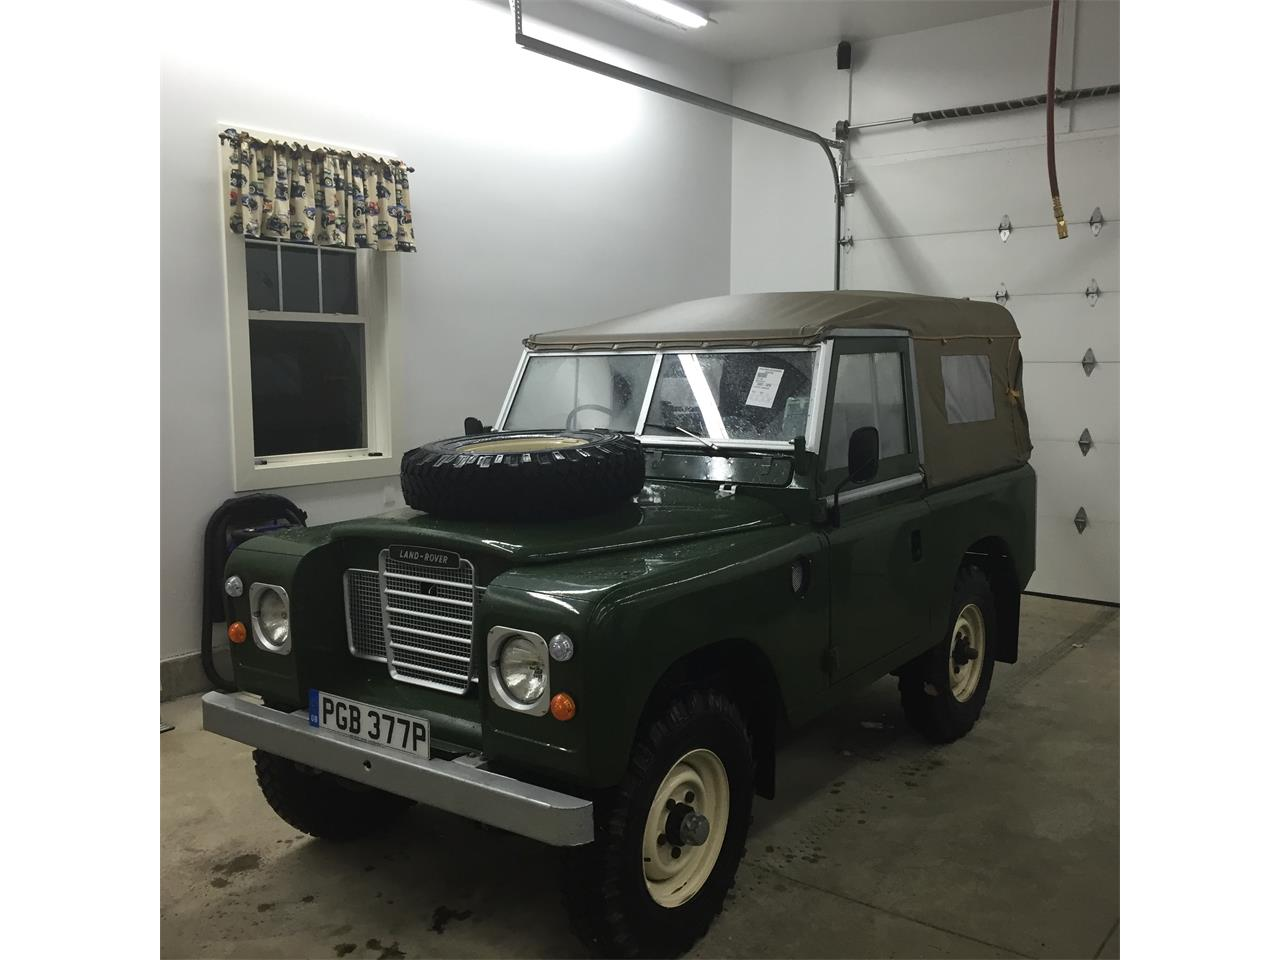 Large Picture of '76 Land Rover Series II 88 located in New Hampshire - $44,900.00 - Q5DA